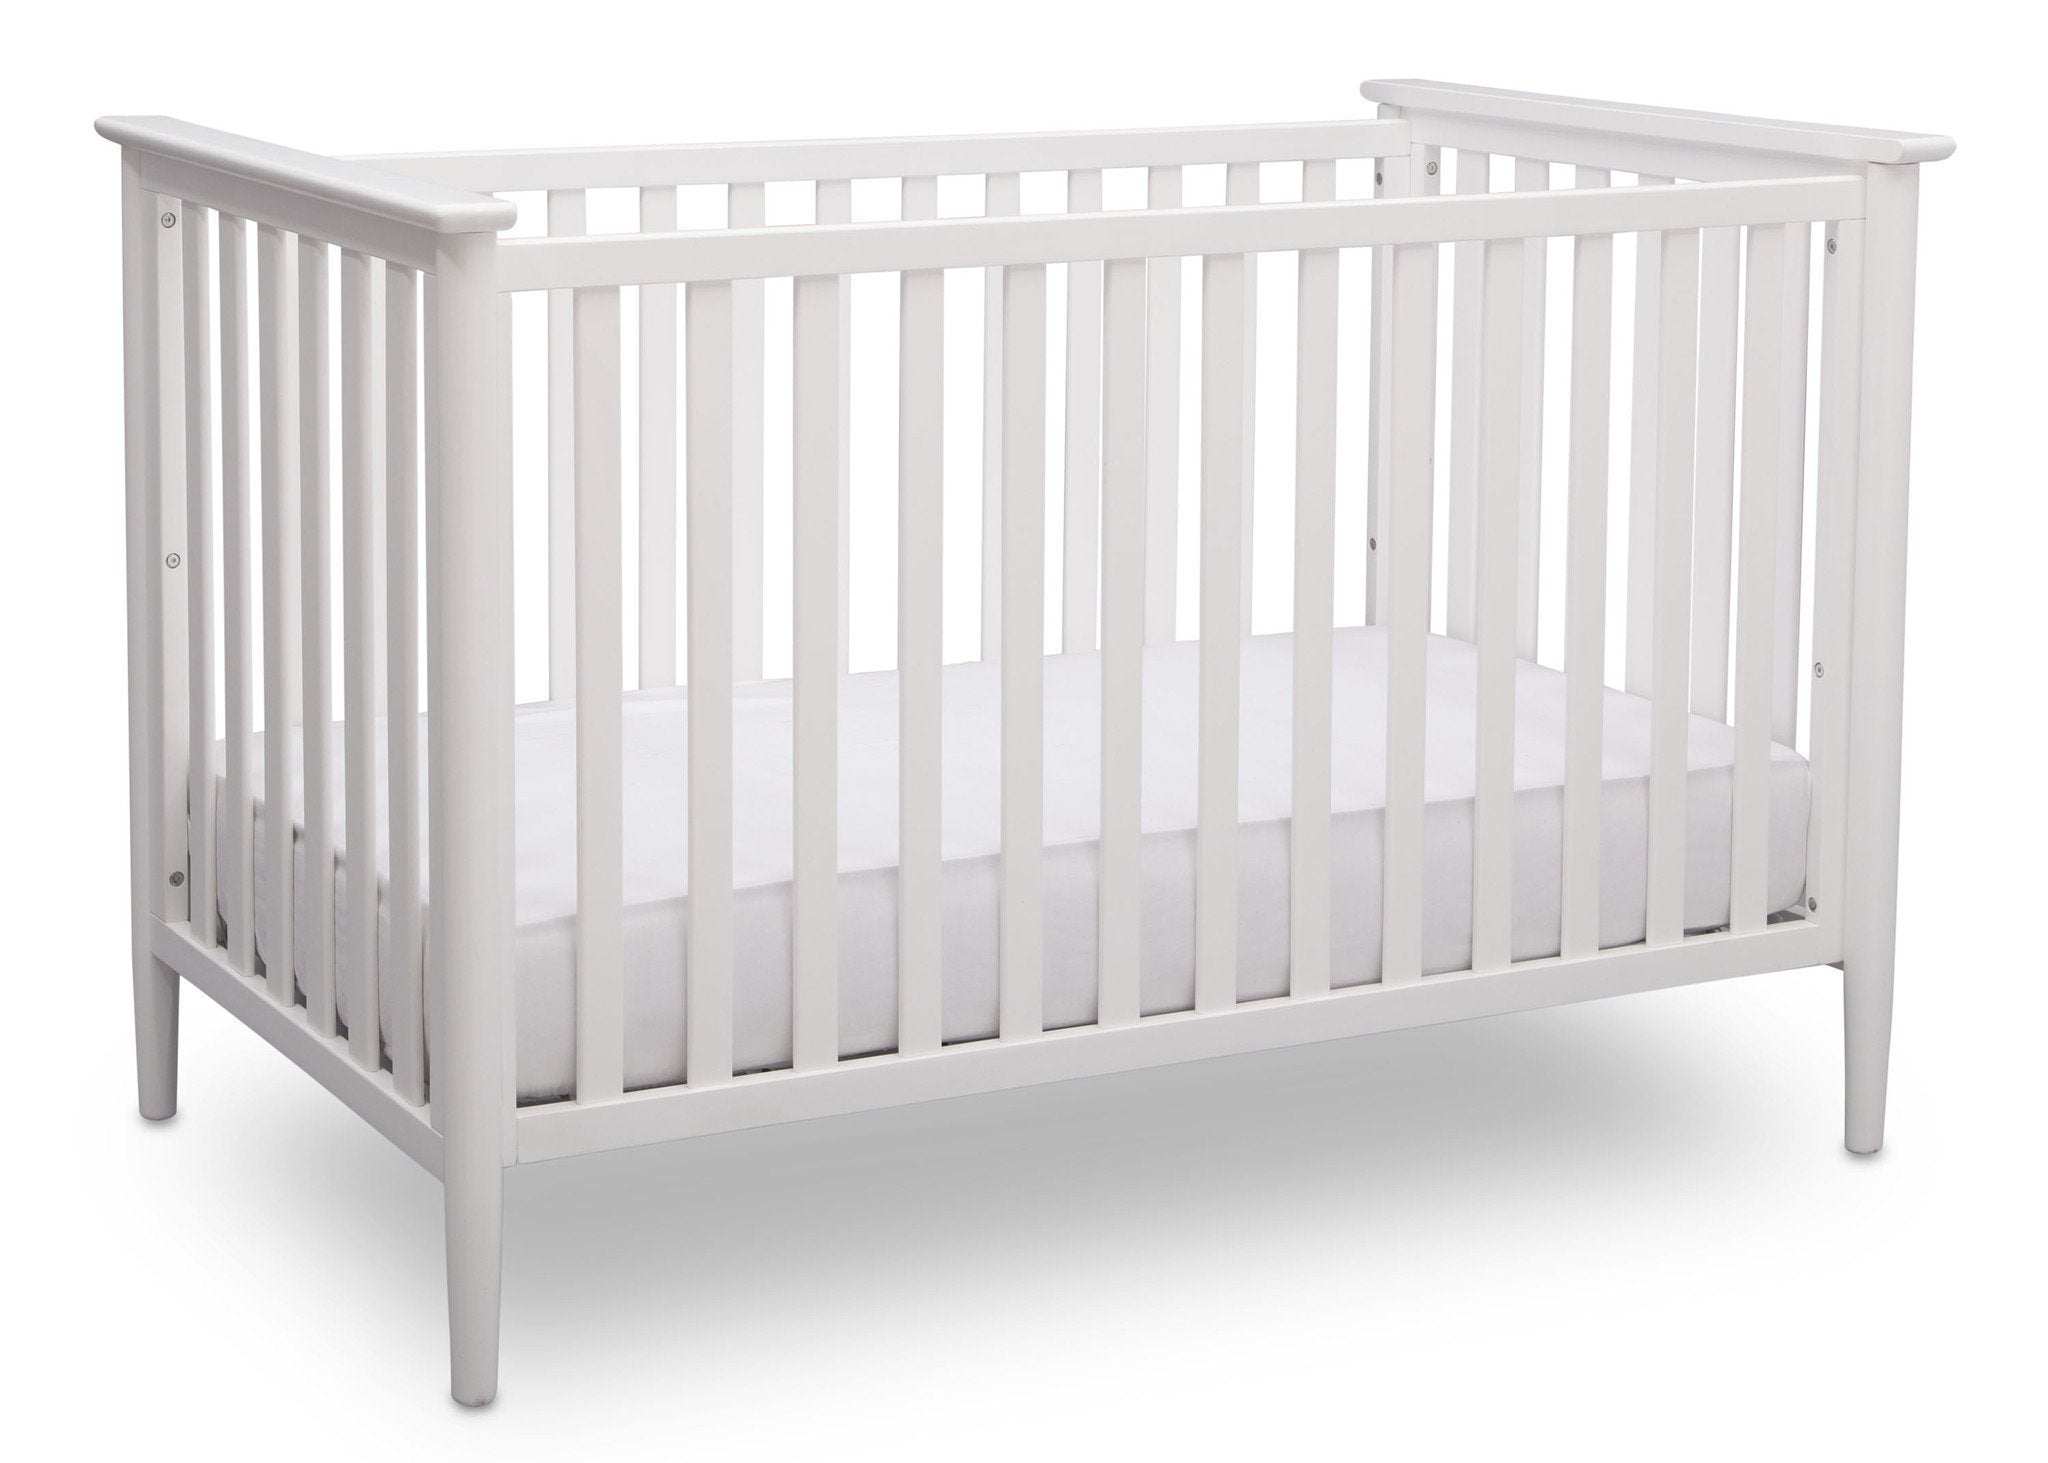 Delta Children Bianca White (130) Greyson 3-in-1 Crib, Angled View, a2a